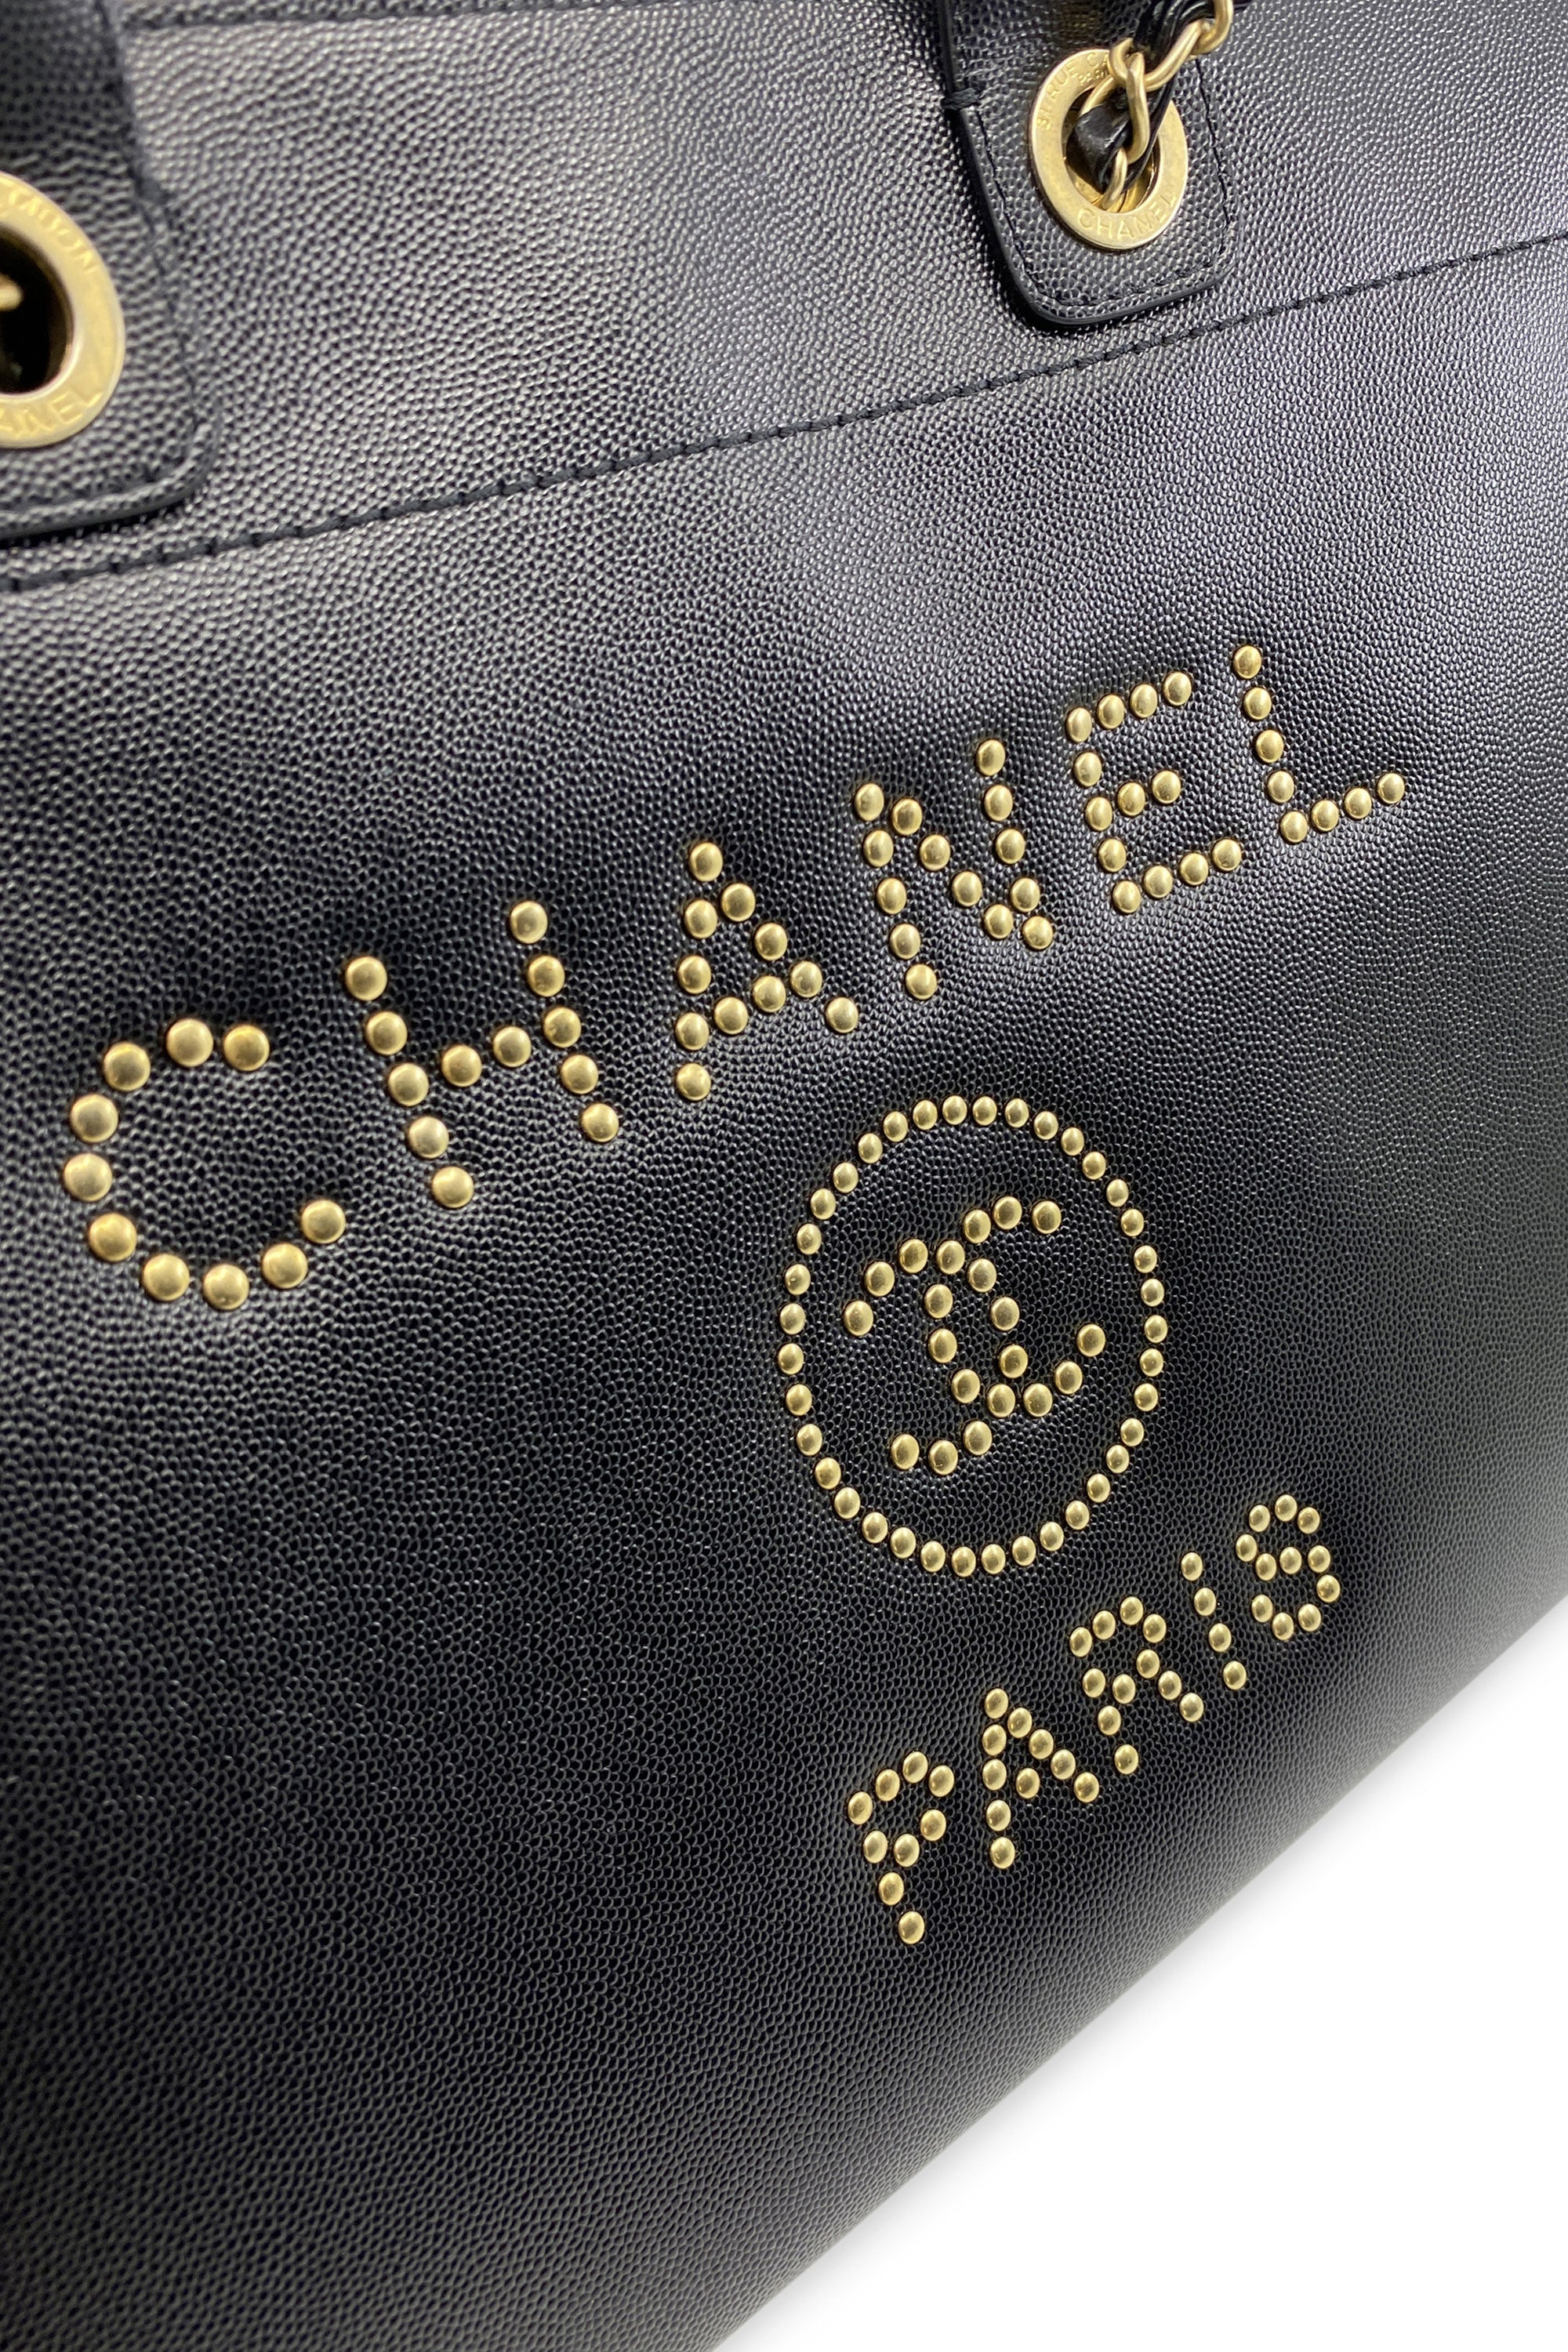 CHANEL Large Deauville Shopping Bag Black with Studs